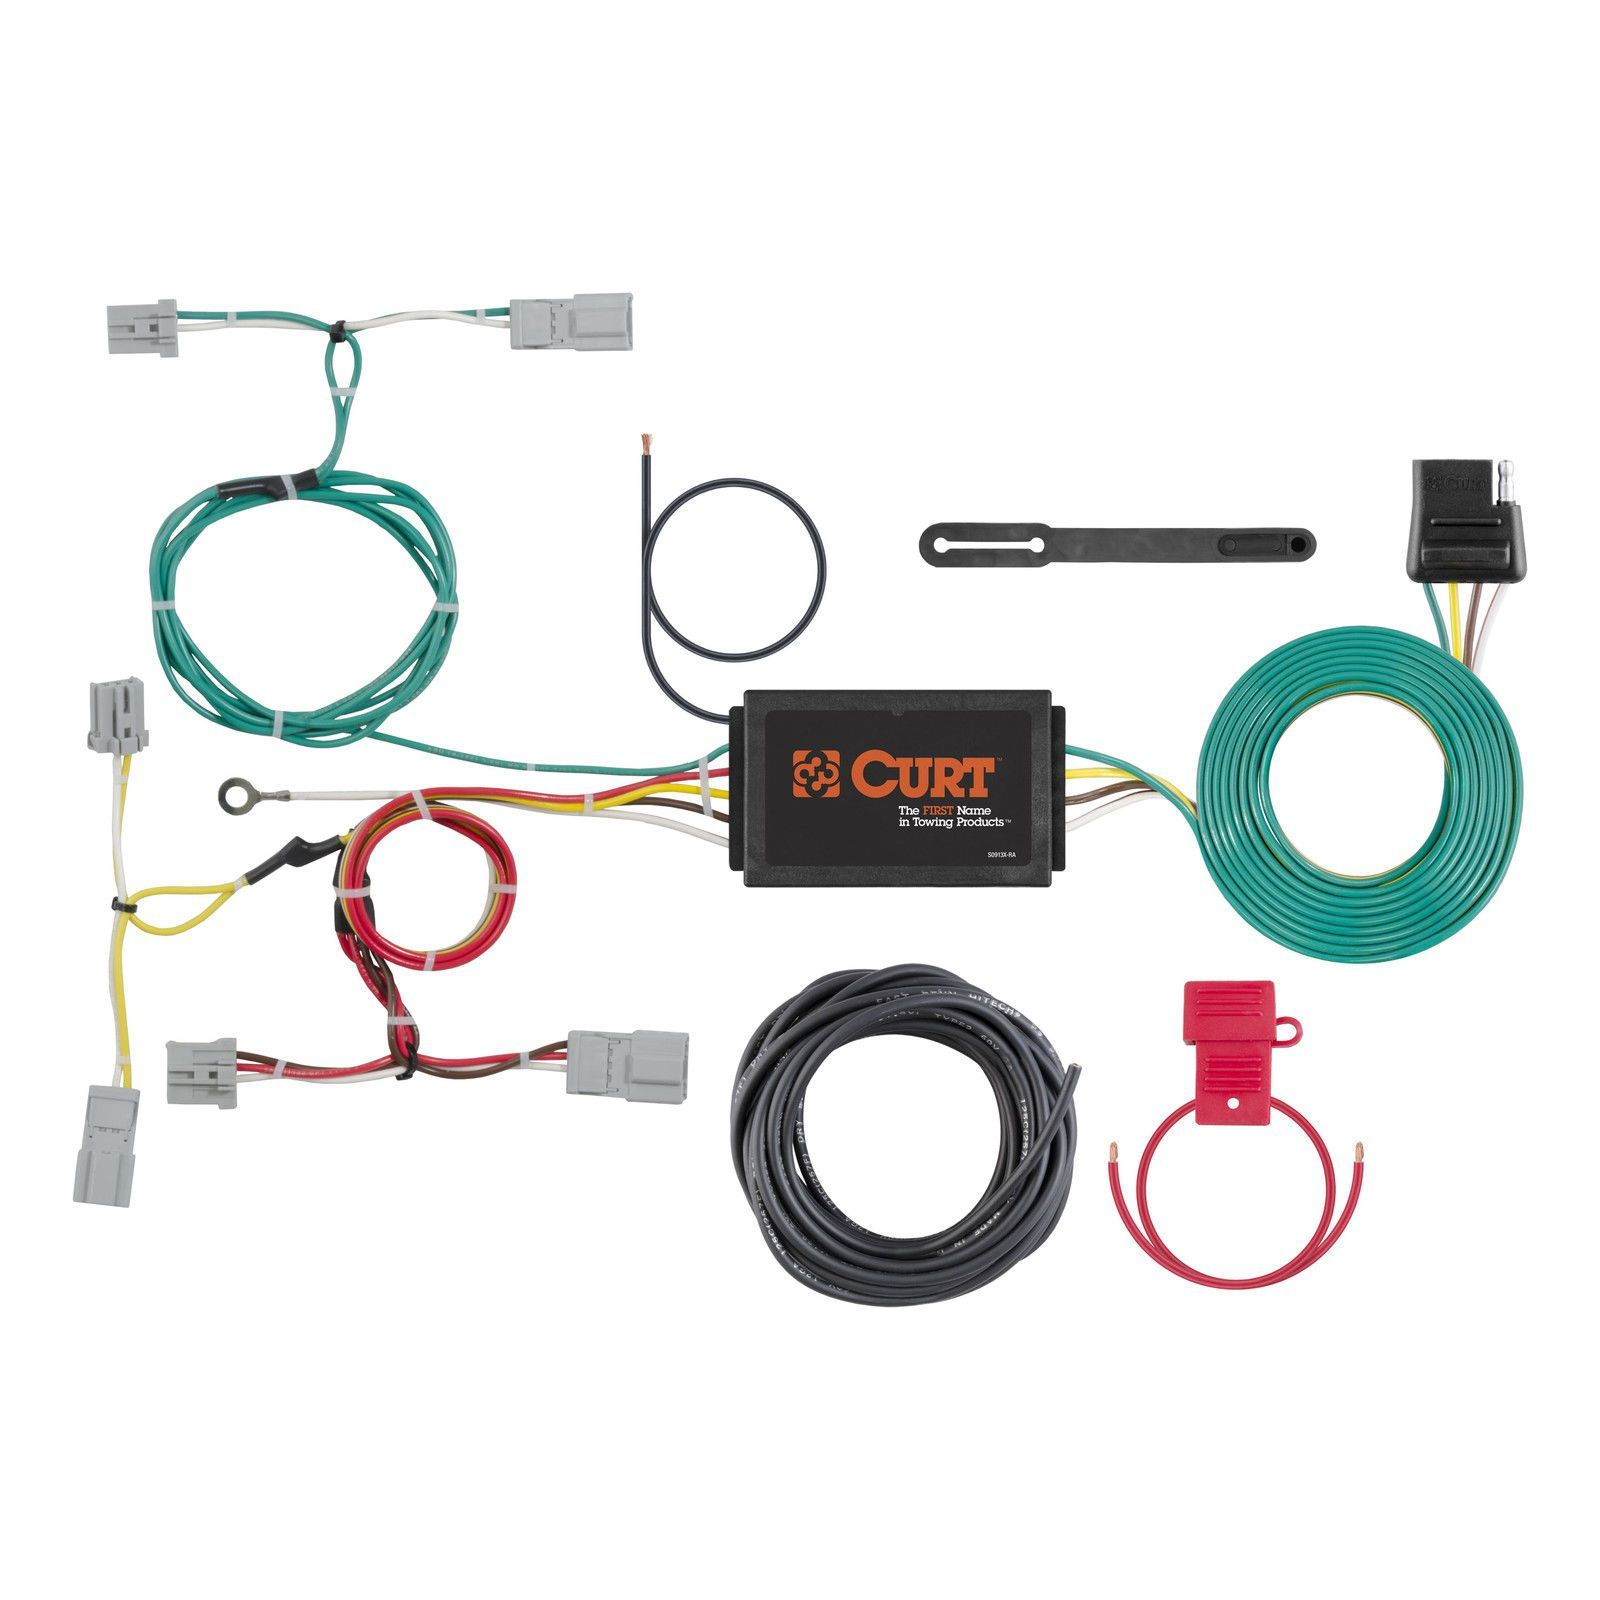 Enjoyable Curt Custom Vehicle To Trailer Wiring Harness 56310 For 2016 Mazda Wiring Cloud Hisonuggs Outletorg